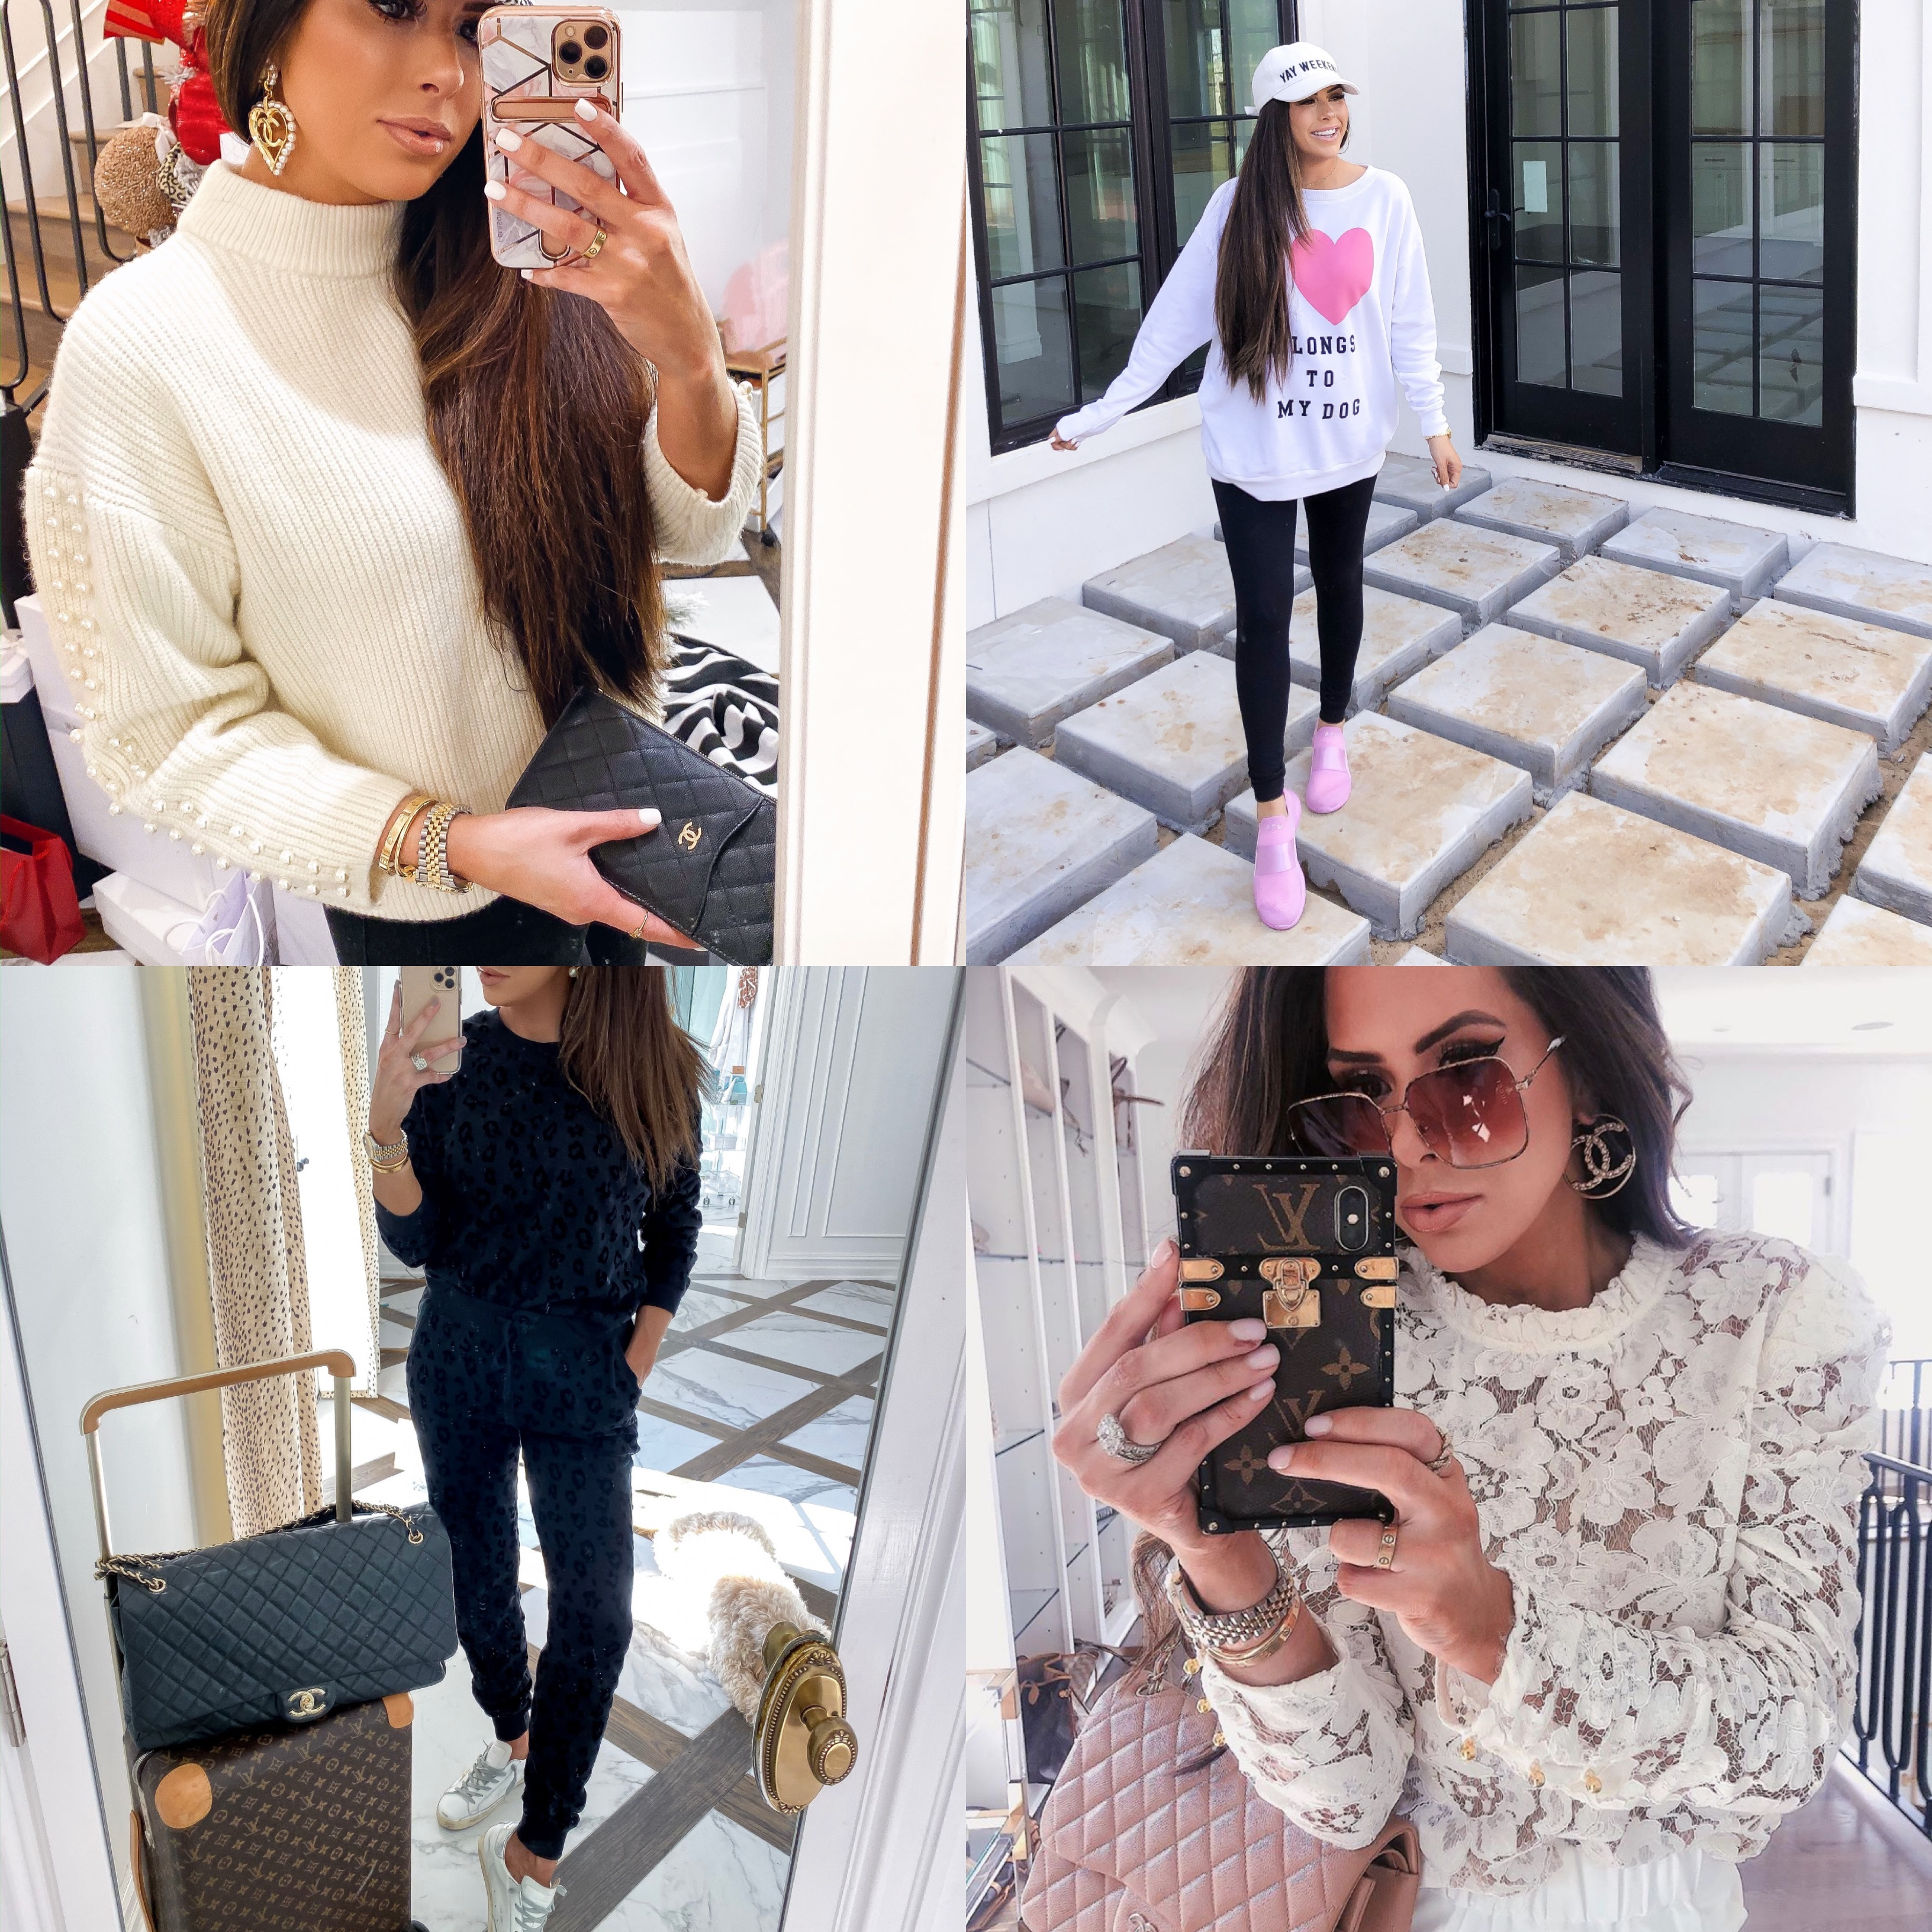 best black friday sales 2019, shopbop black friday sales, emily gemma | Mega Black Friday Sales and Deals Guide!! by popular Oklahoma life and style blog, The Sweetest Thing: collage image of a woman wearing various Black Friday sale items.